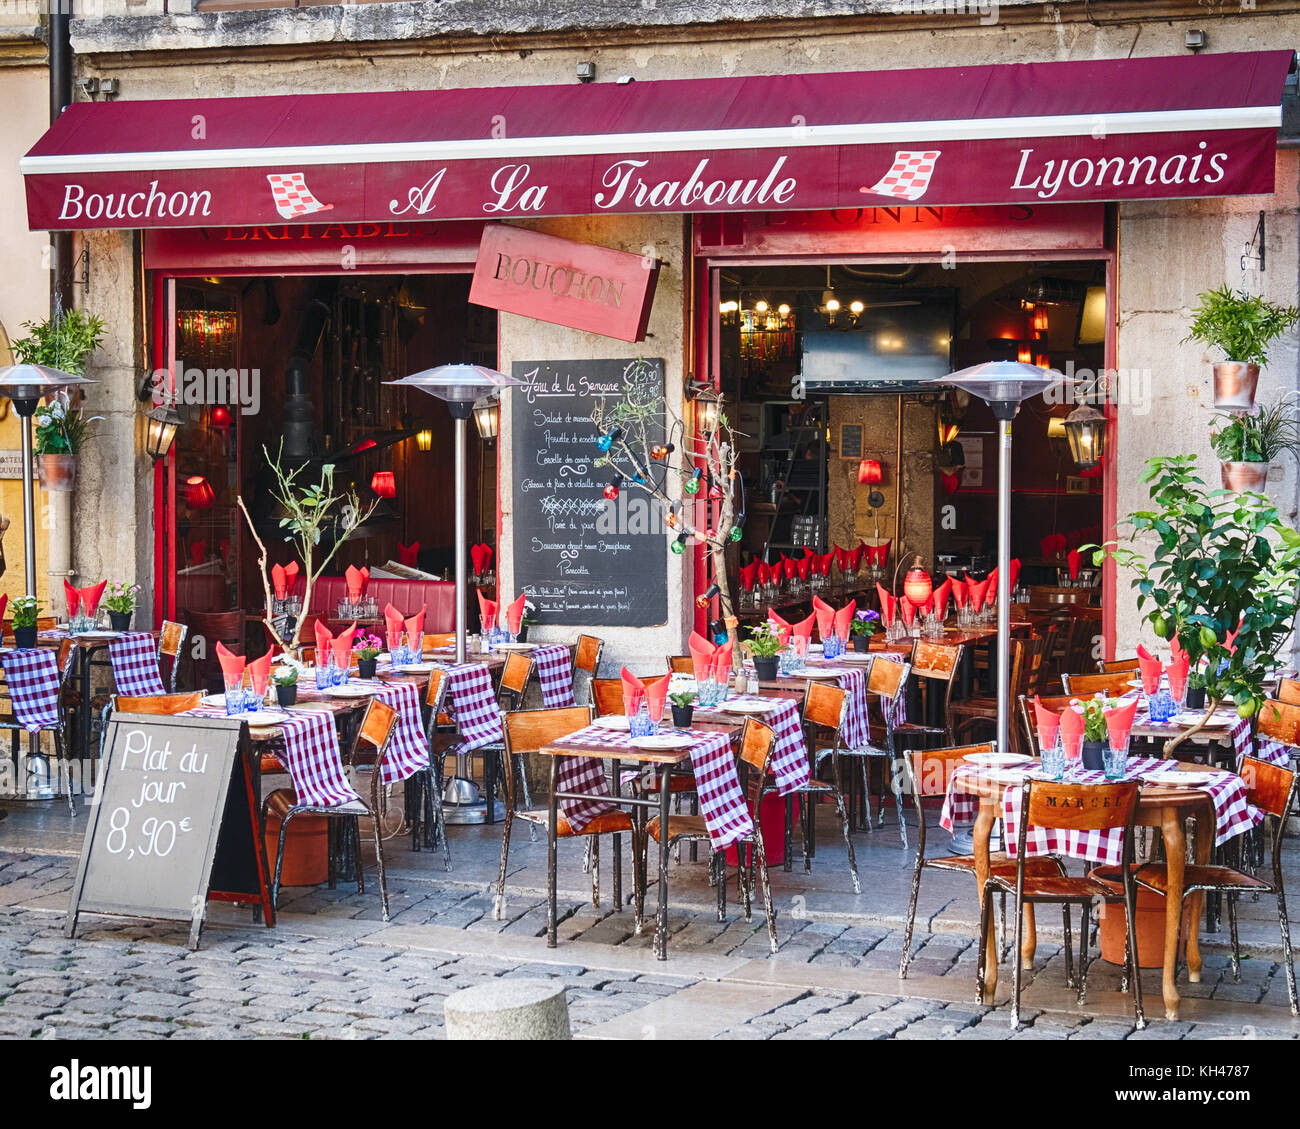 Bistro Open For Lunch, Lyon, France - Stock Image